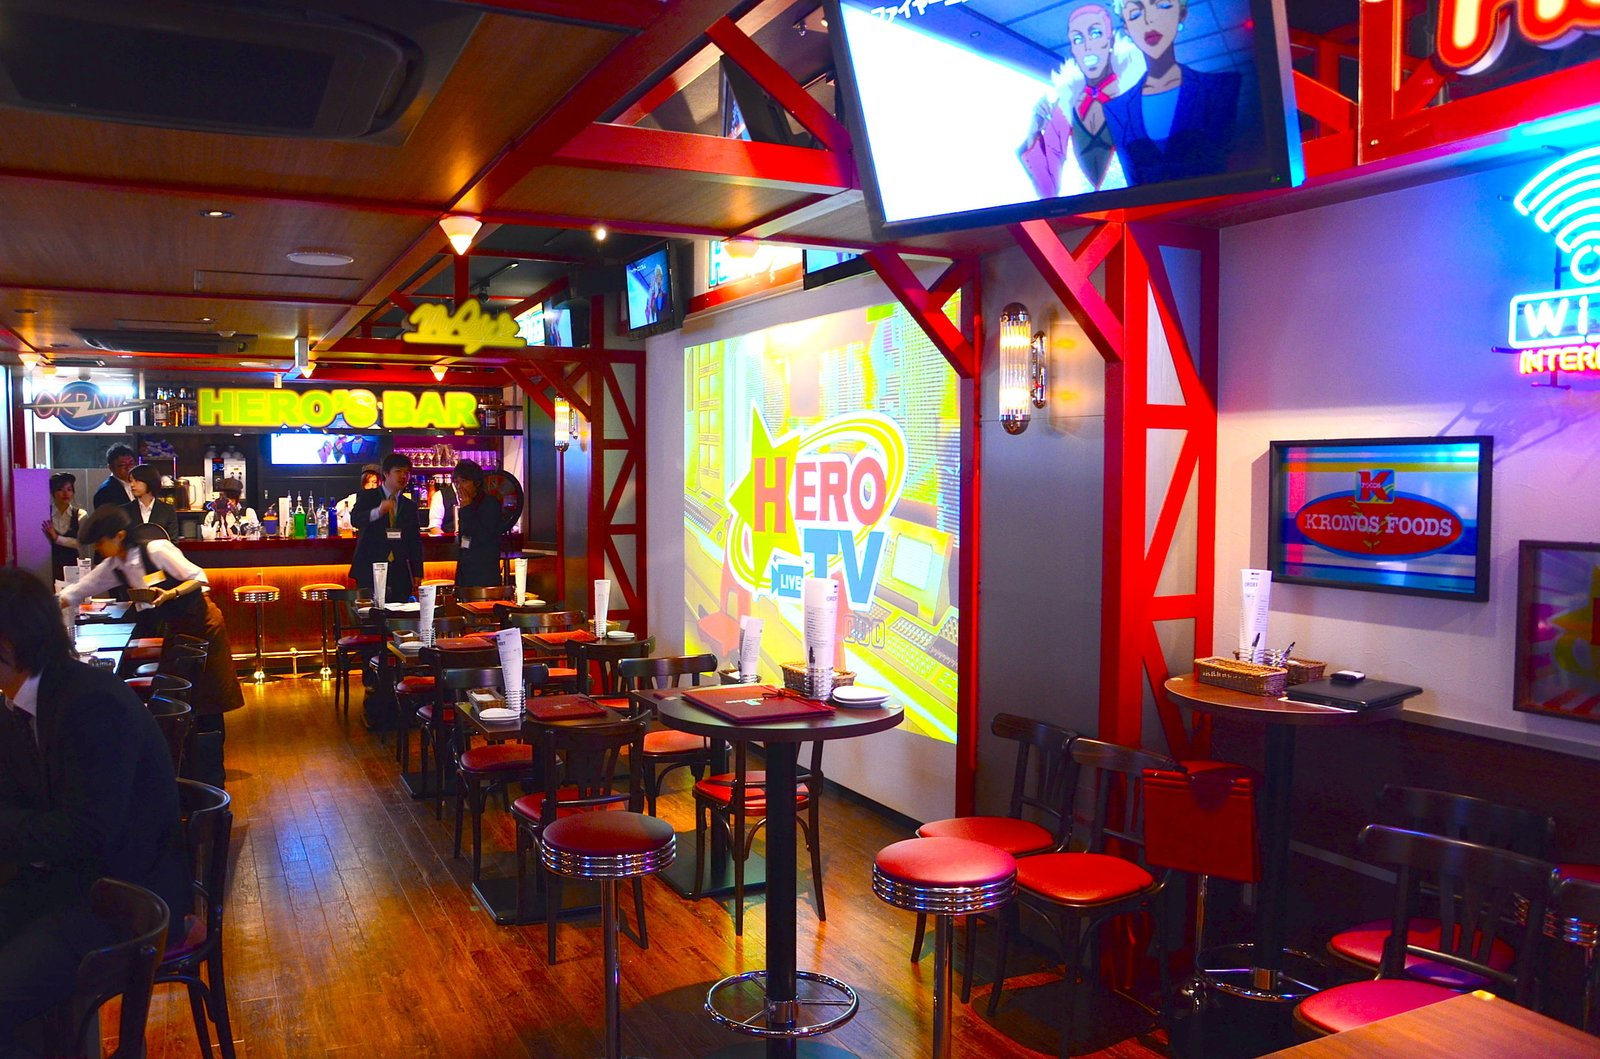 A New Place For Otaku Opens In Ikebukuro! We Check Out